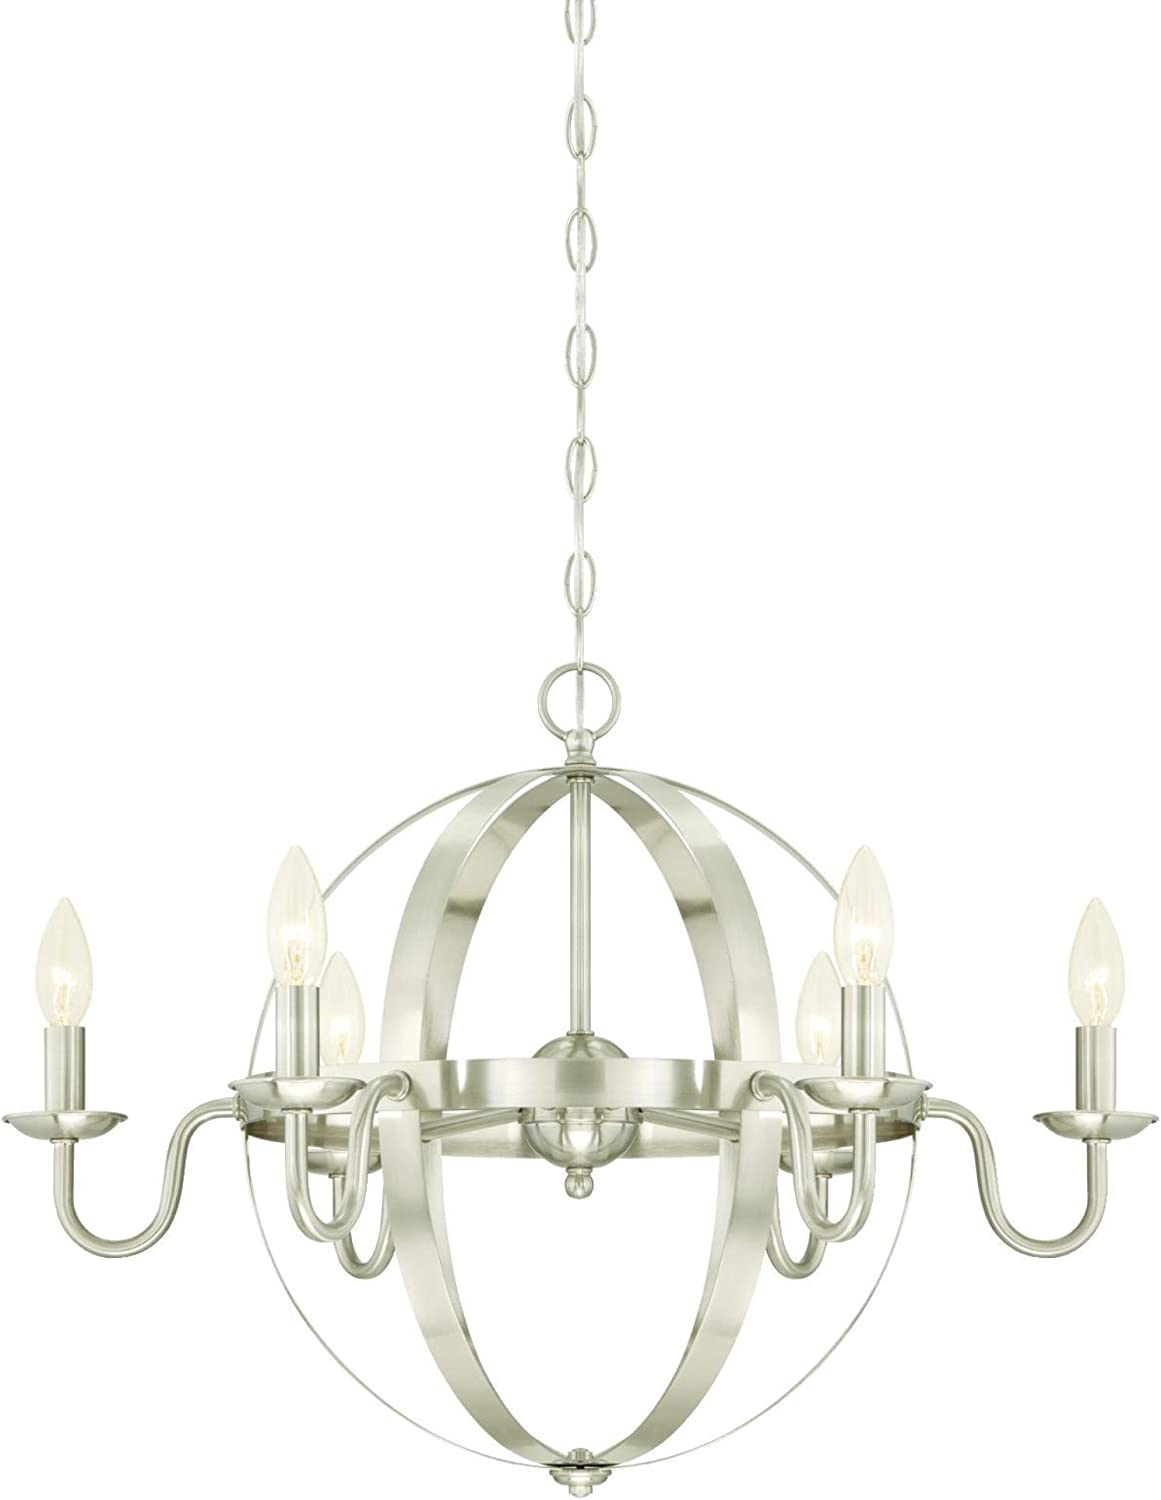 Westinghouse Lighting 6303100 Brixton Six-Light Indoor Chandelier, Brushed Nickel Finish,